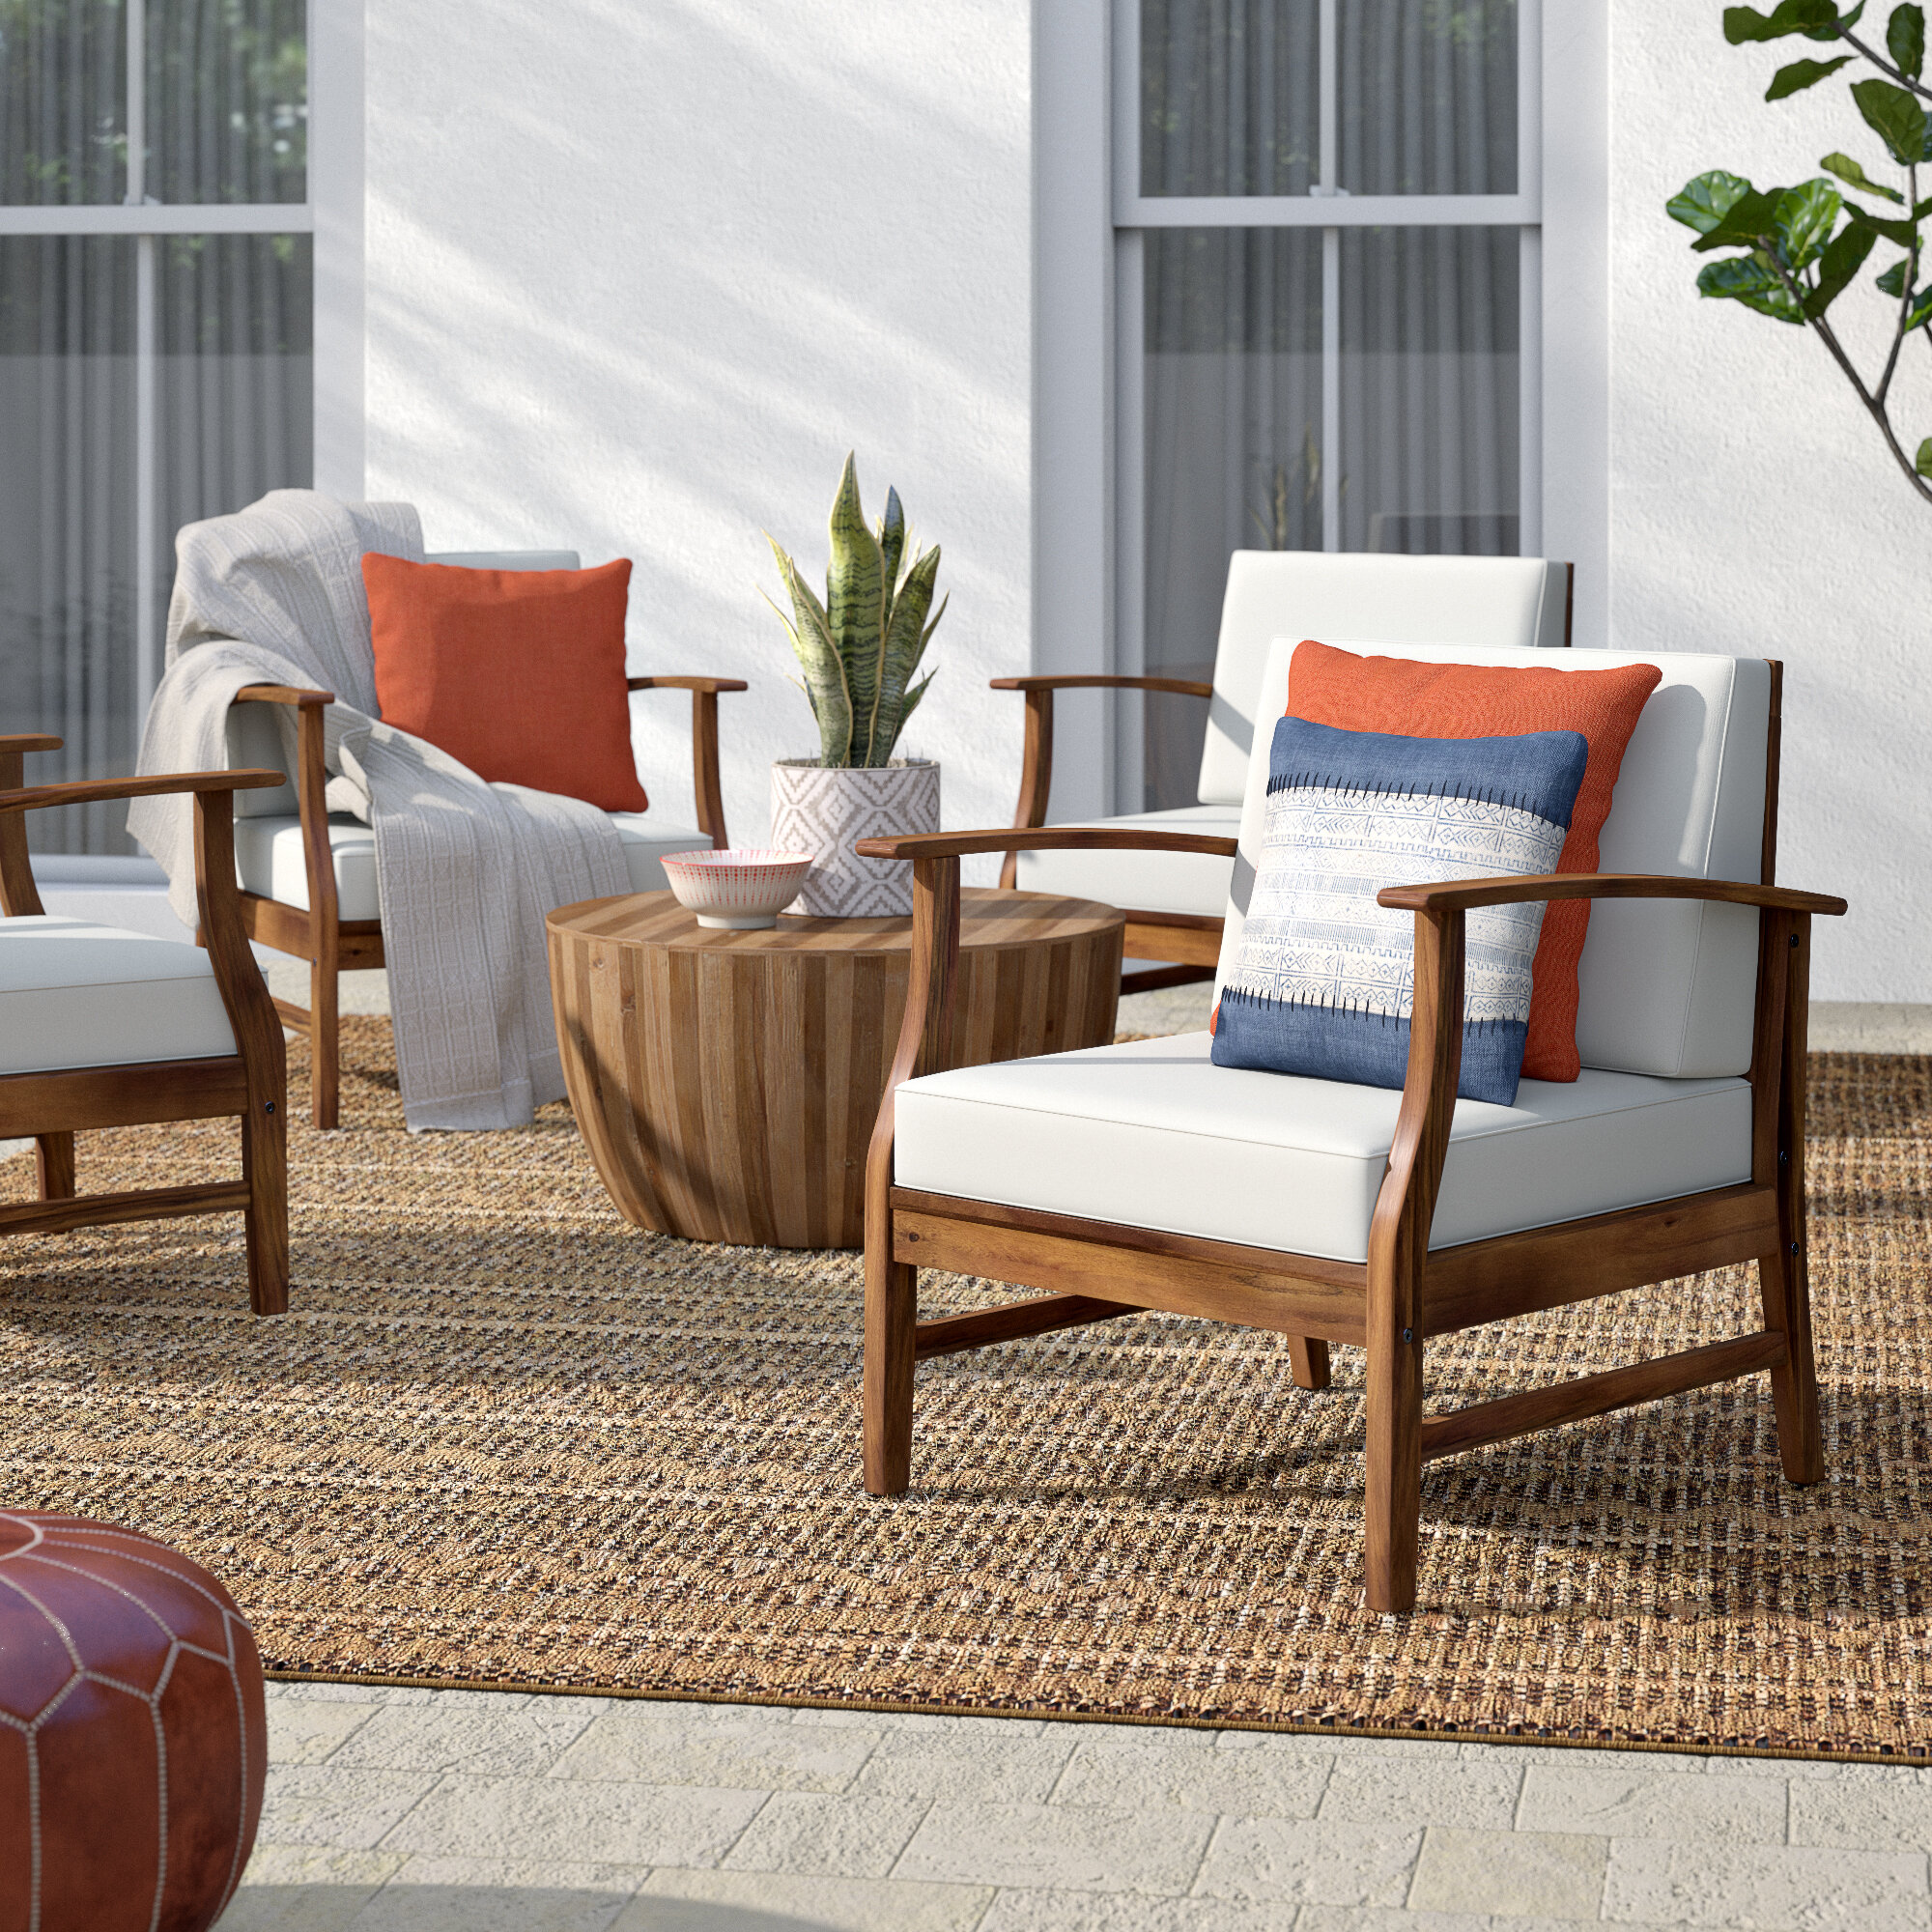 Mistana Antonia Modern Outdoor Wood Patio Chair With Cushions